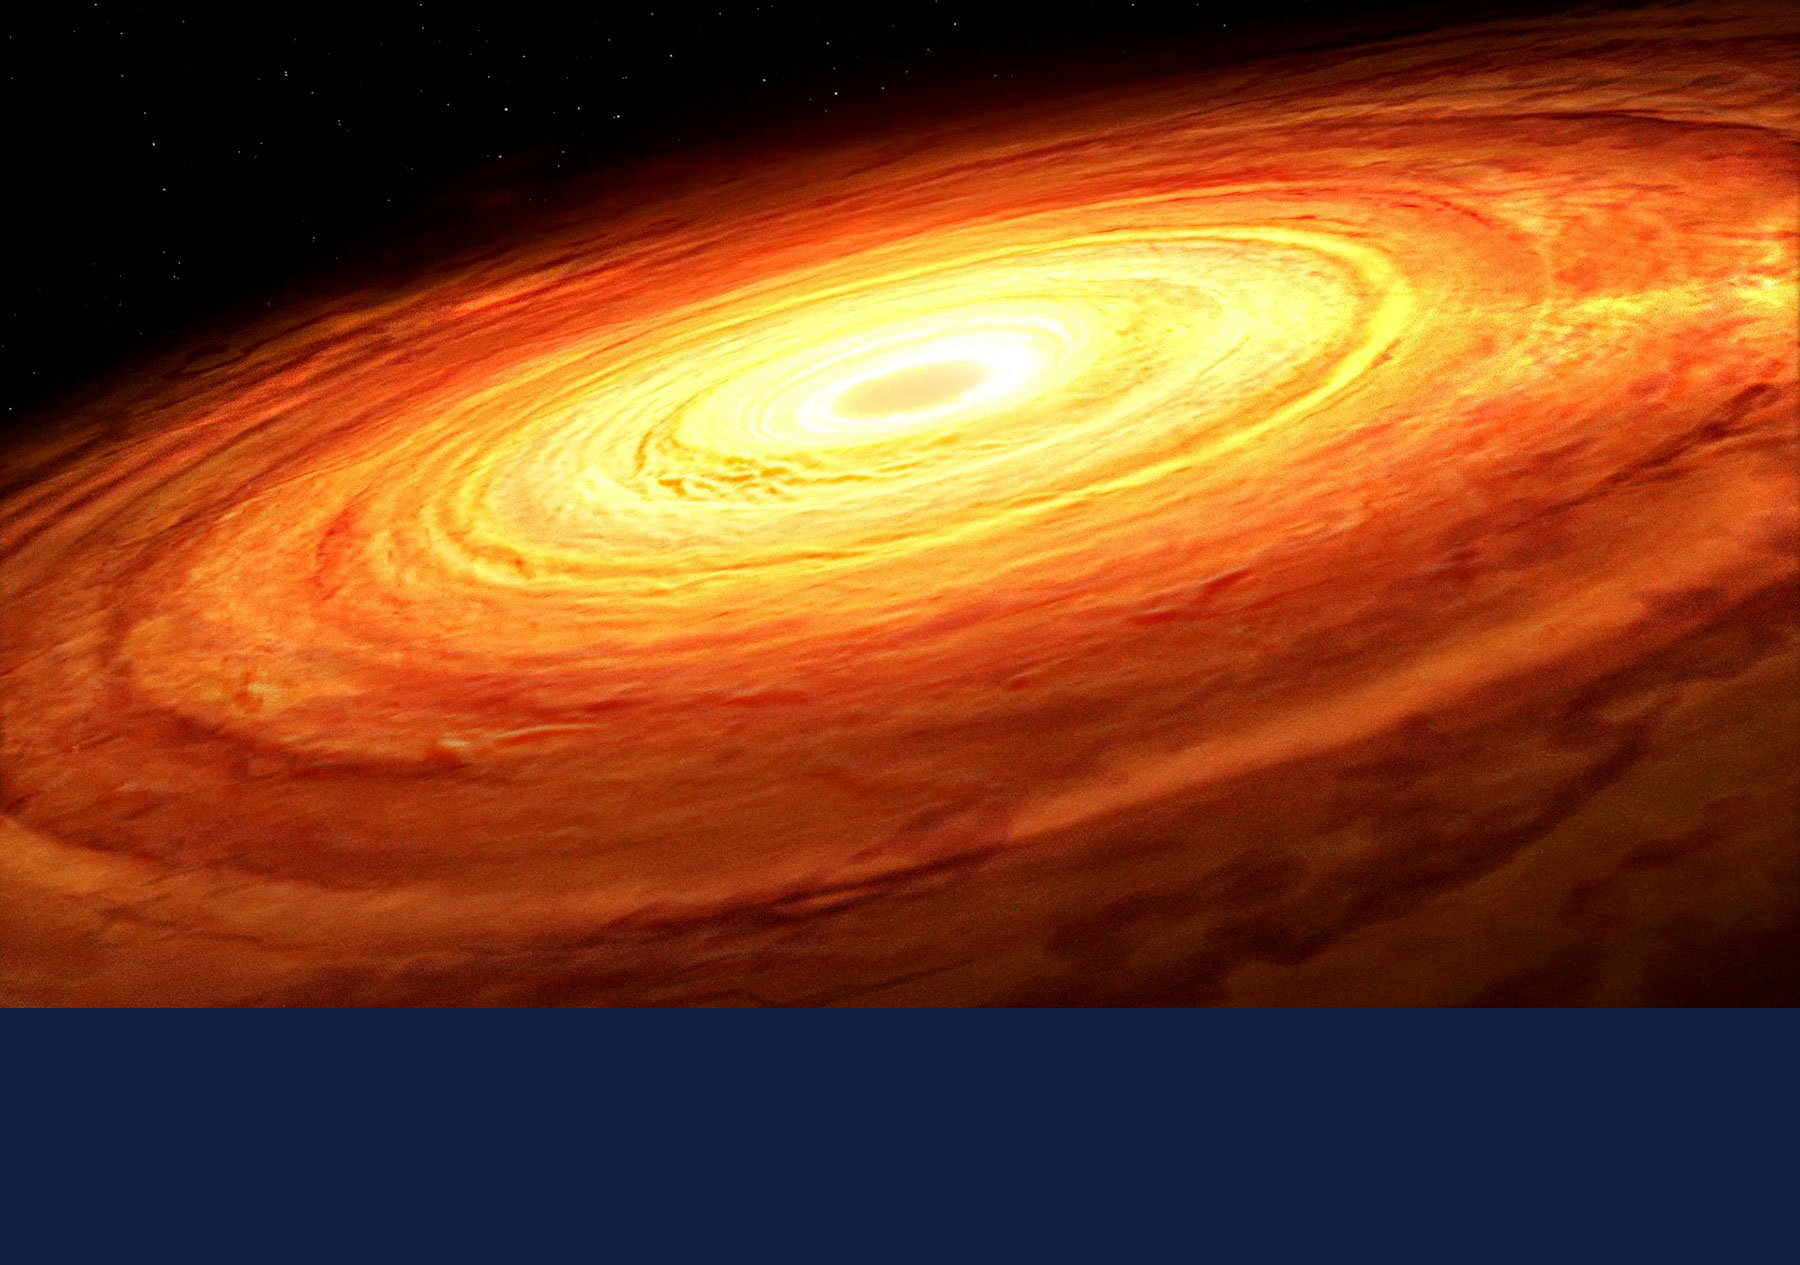 An artist's impression of an accretion disk rotating around an unseen supermassive black hole. Graphic courtesy Mark A. Garlick/Simons Foundation